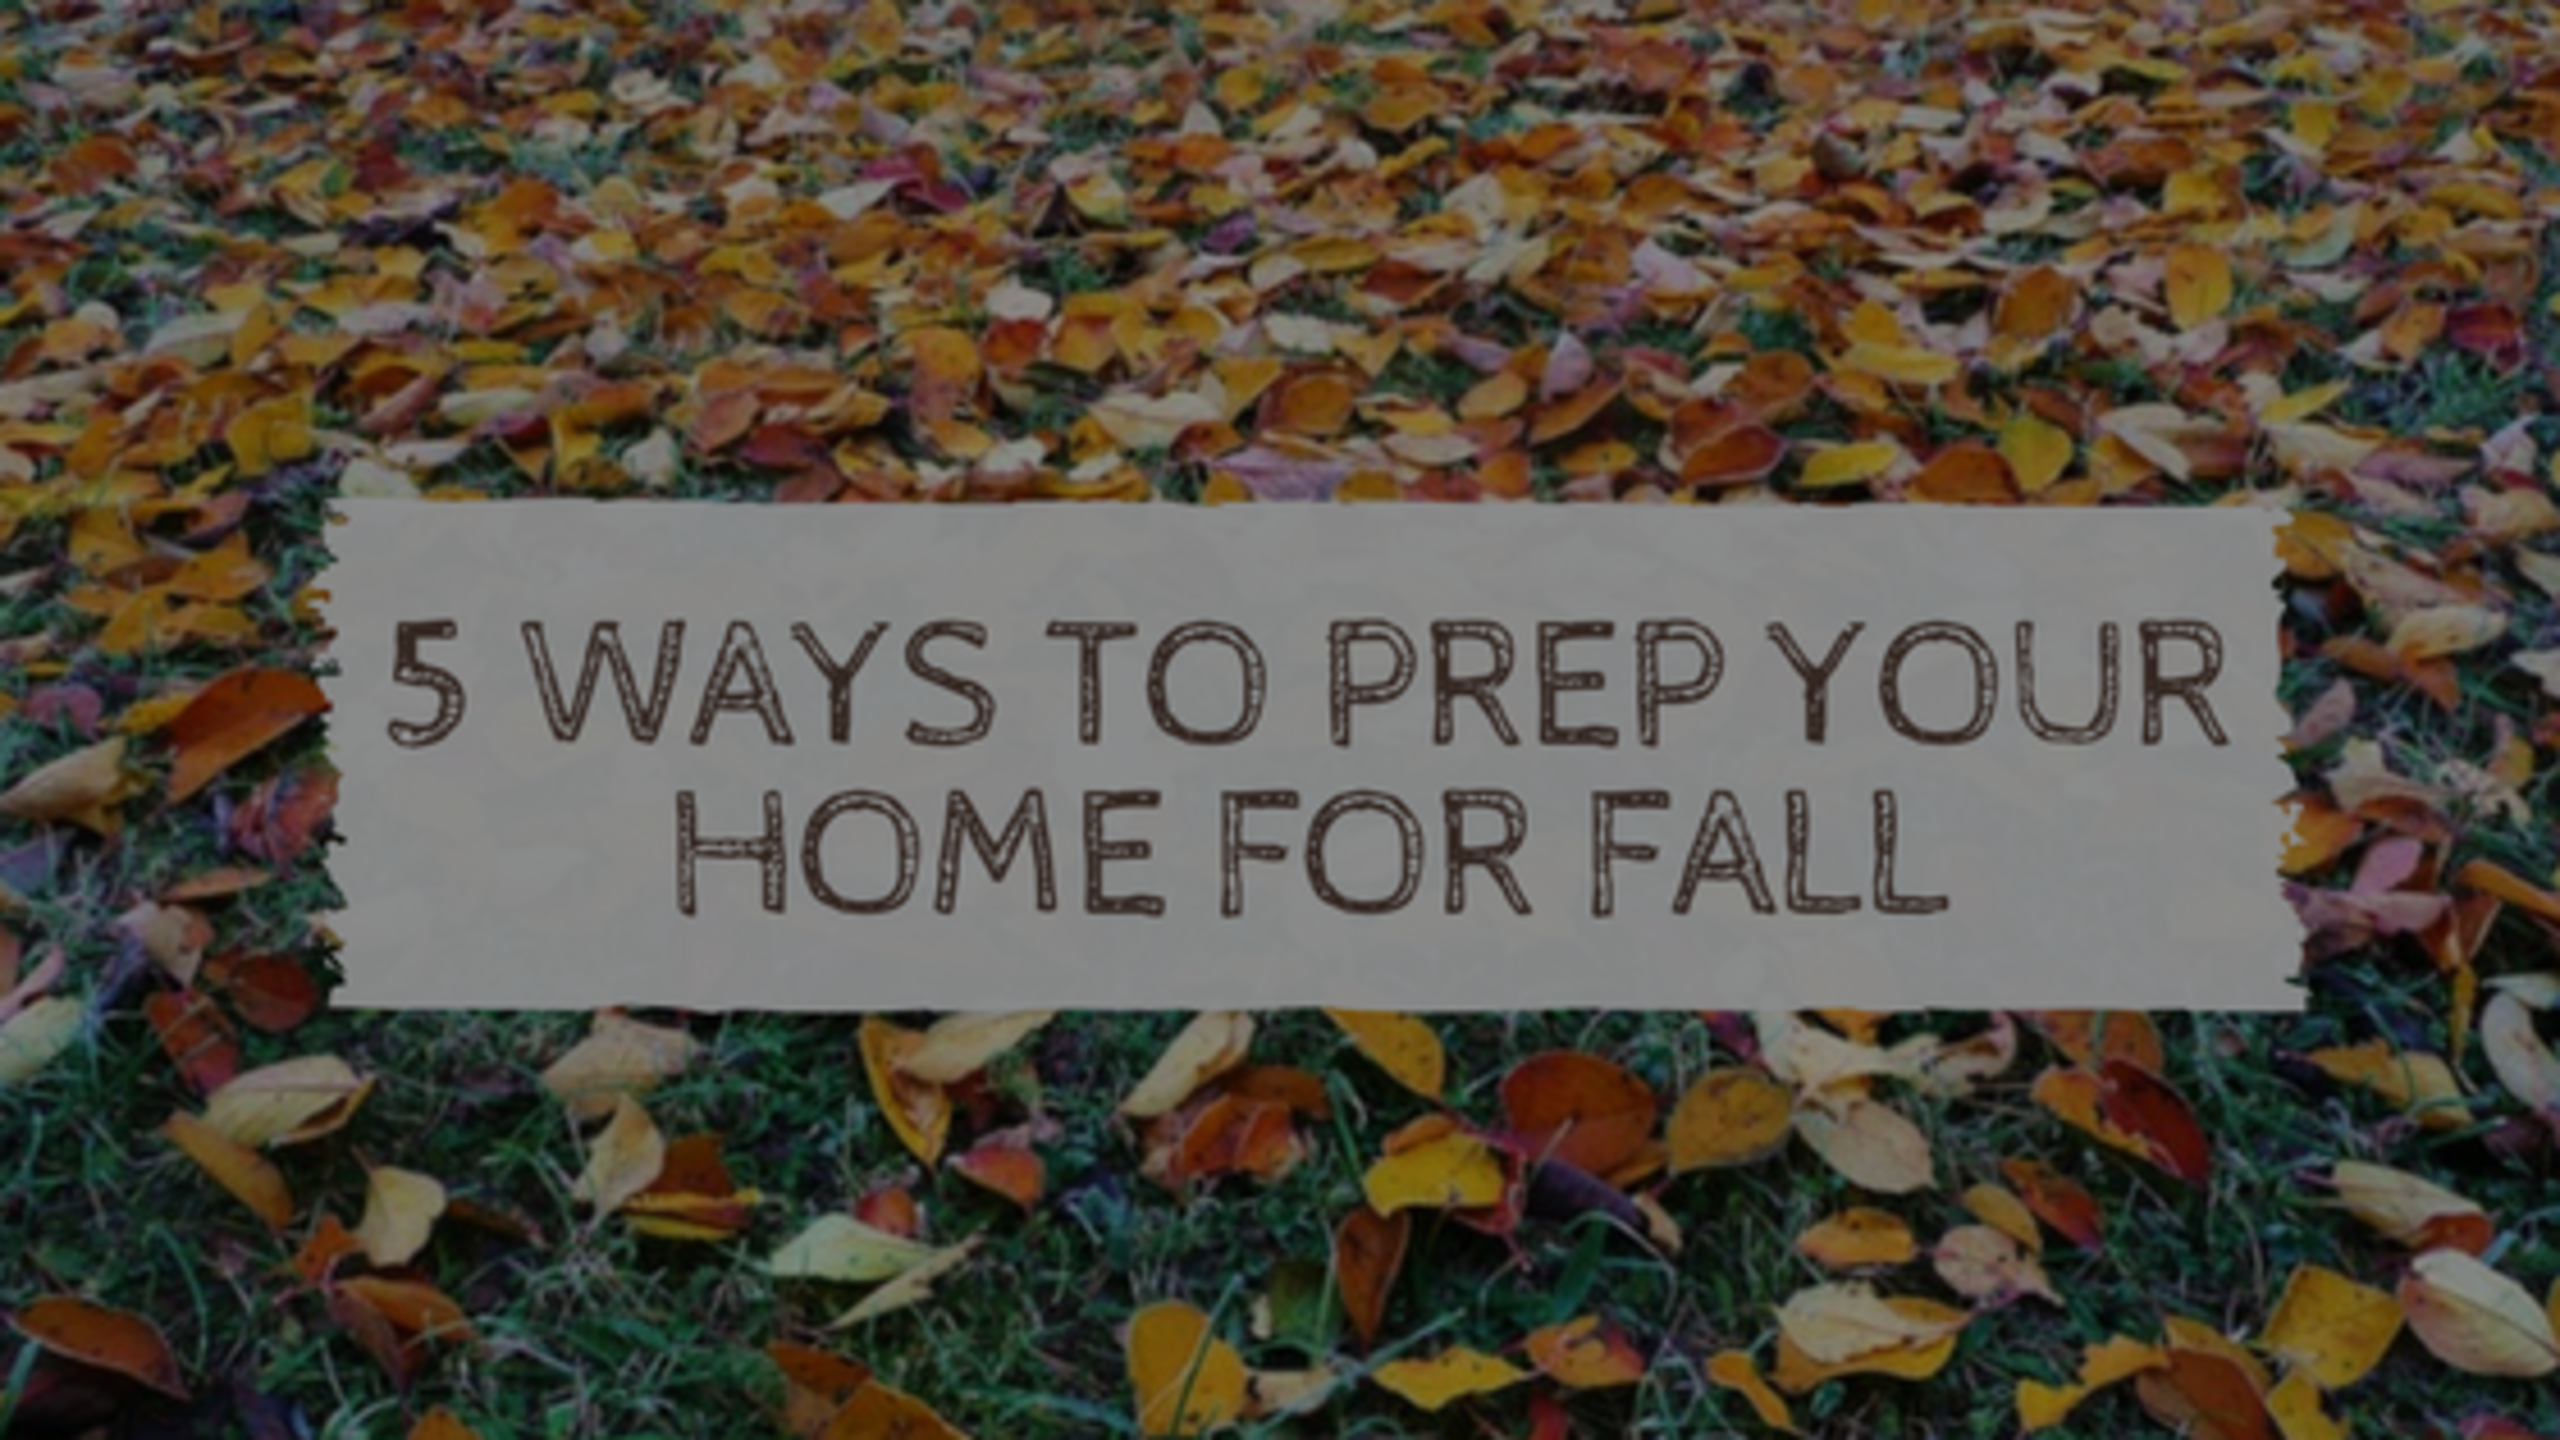 5 Ways to Prep Your Home for Autumn!